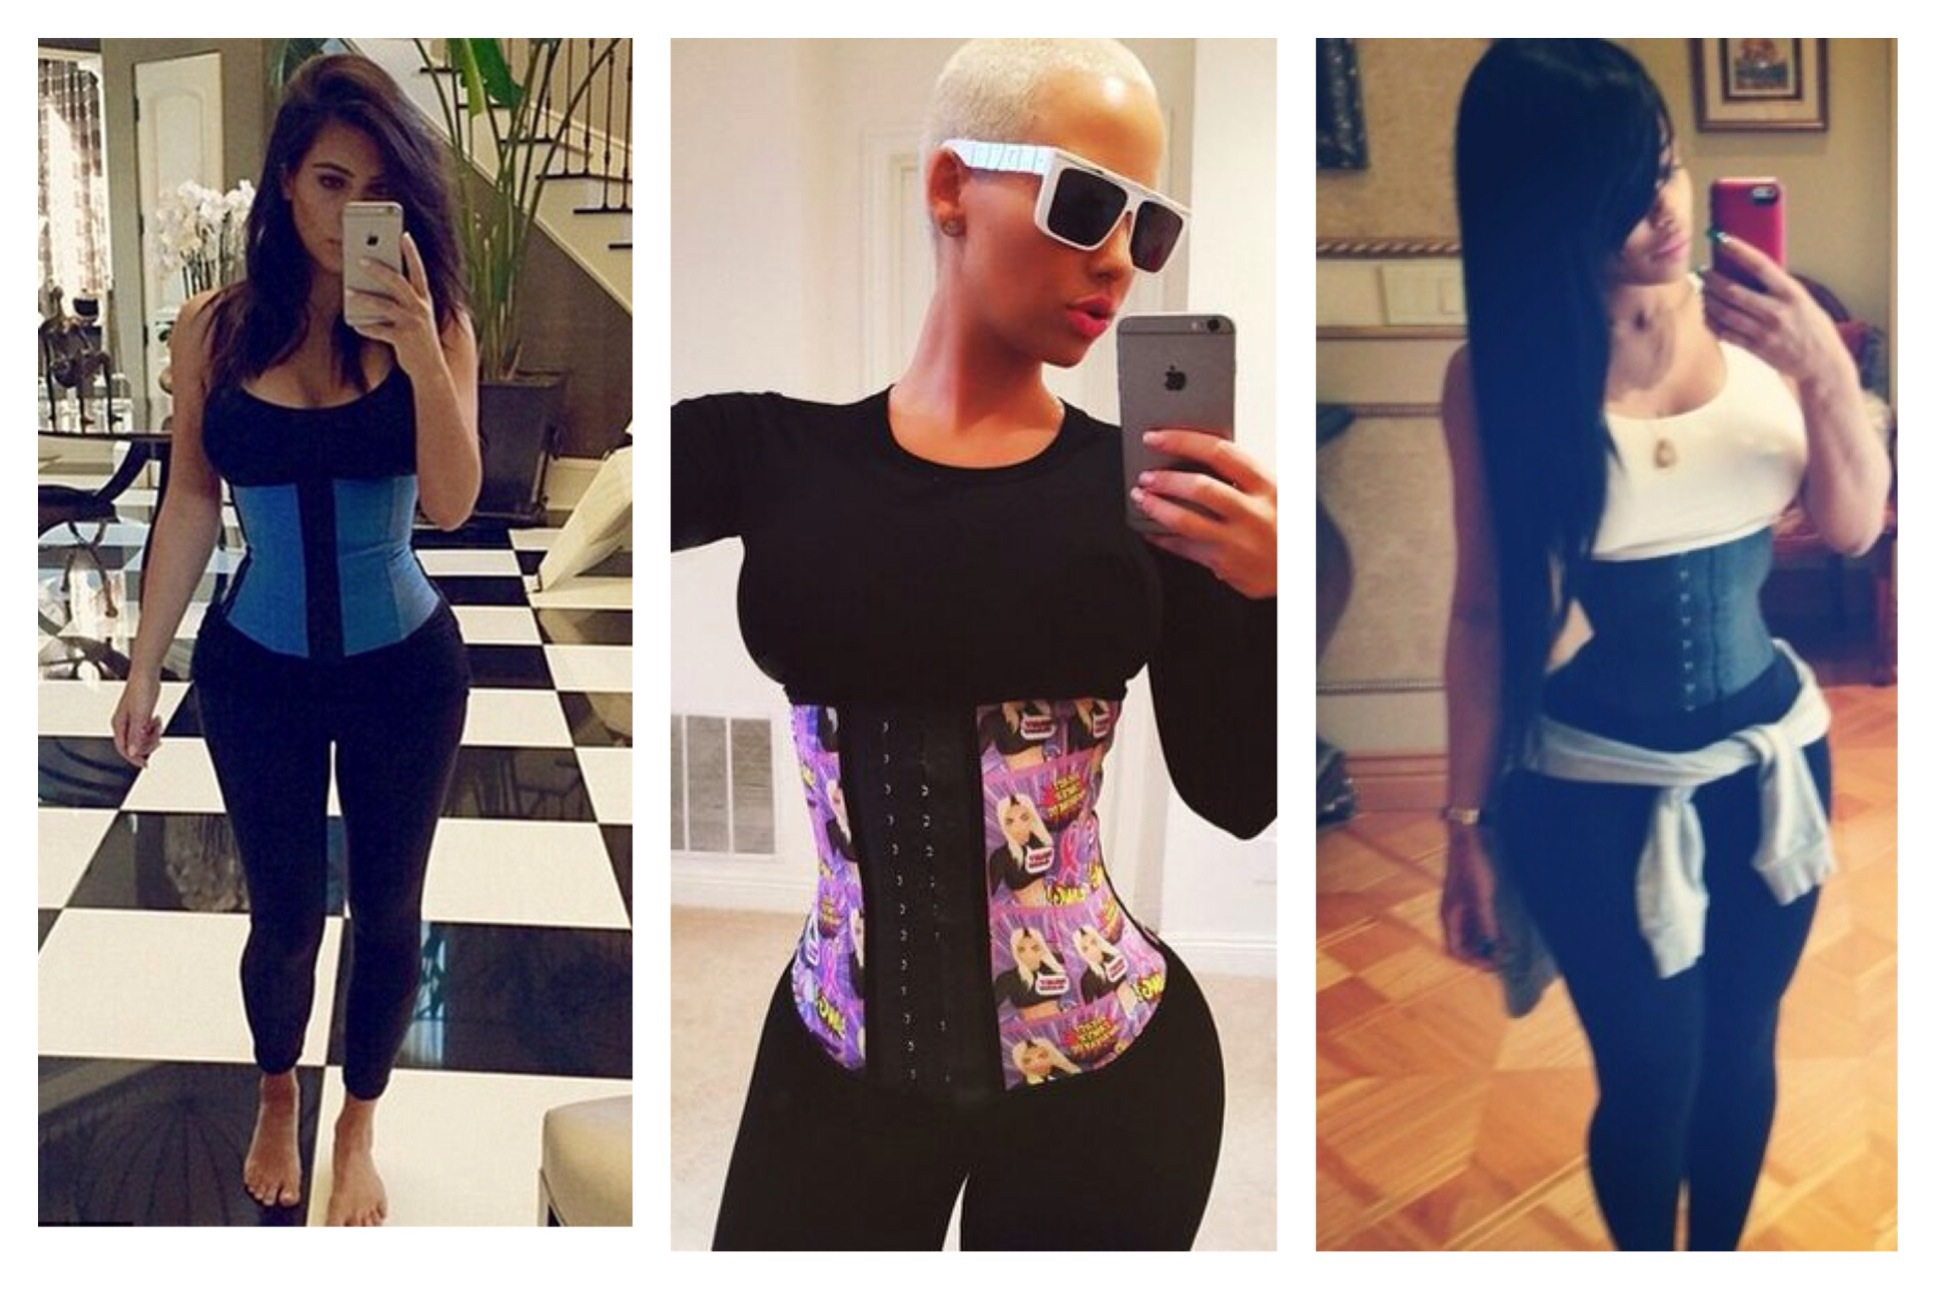 the harmful effects of waist training Waist training review waist training is one of the newest crazes in the diet and exercise community some people say it's the best way to quickly get a sexy hourglass figure others say it's harmful to your health by jeopardizing your organs and bodily functions.